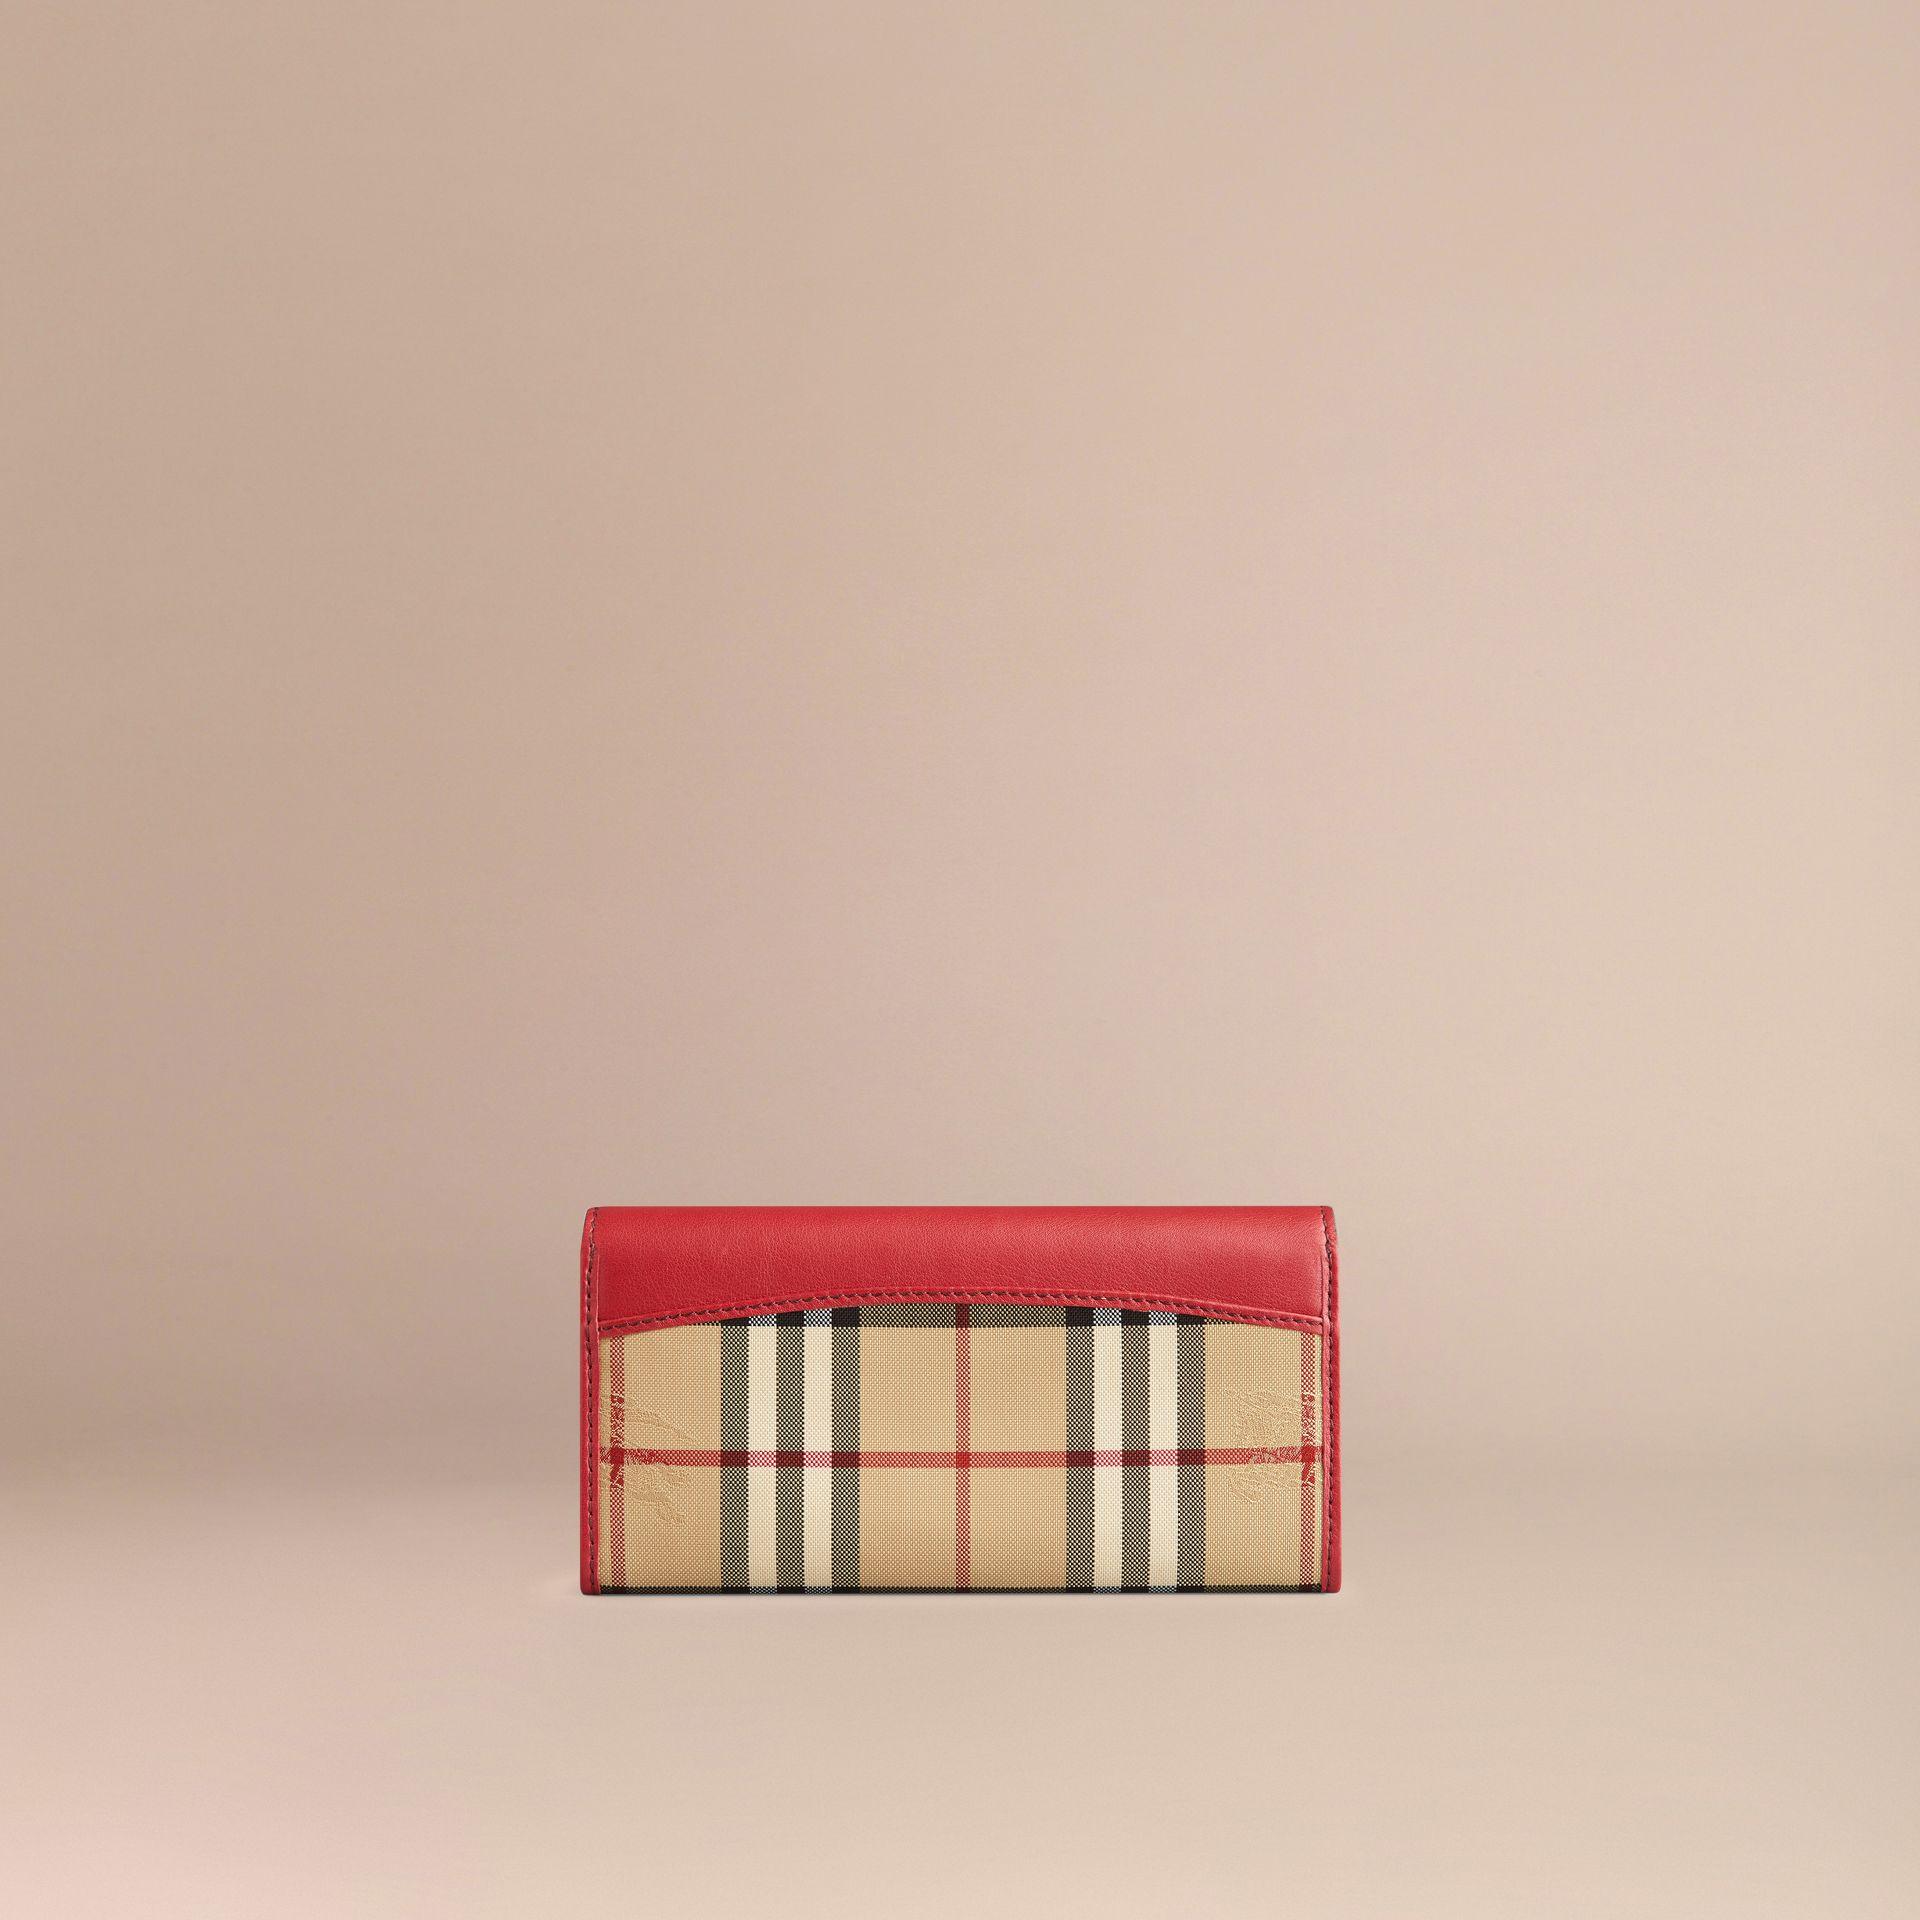 Horseferry Check and Leather Continental Wallet in Parade Red - Women | Burberry - gallery image 3